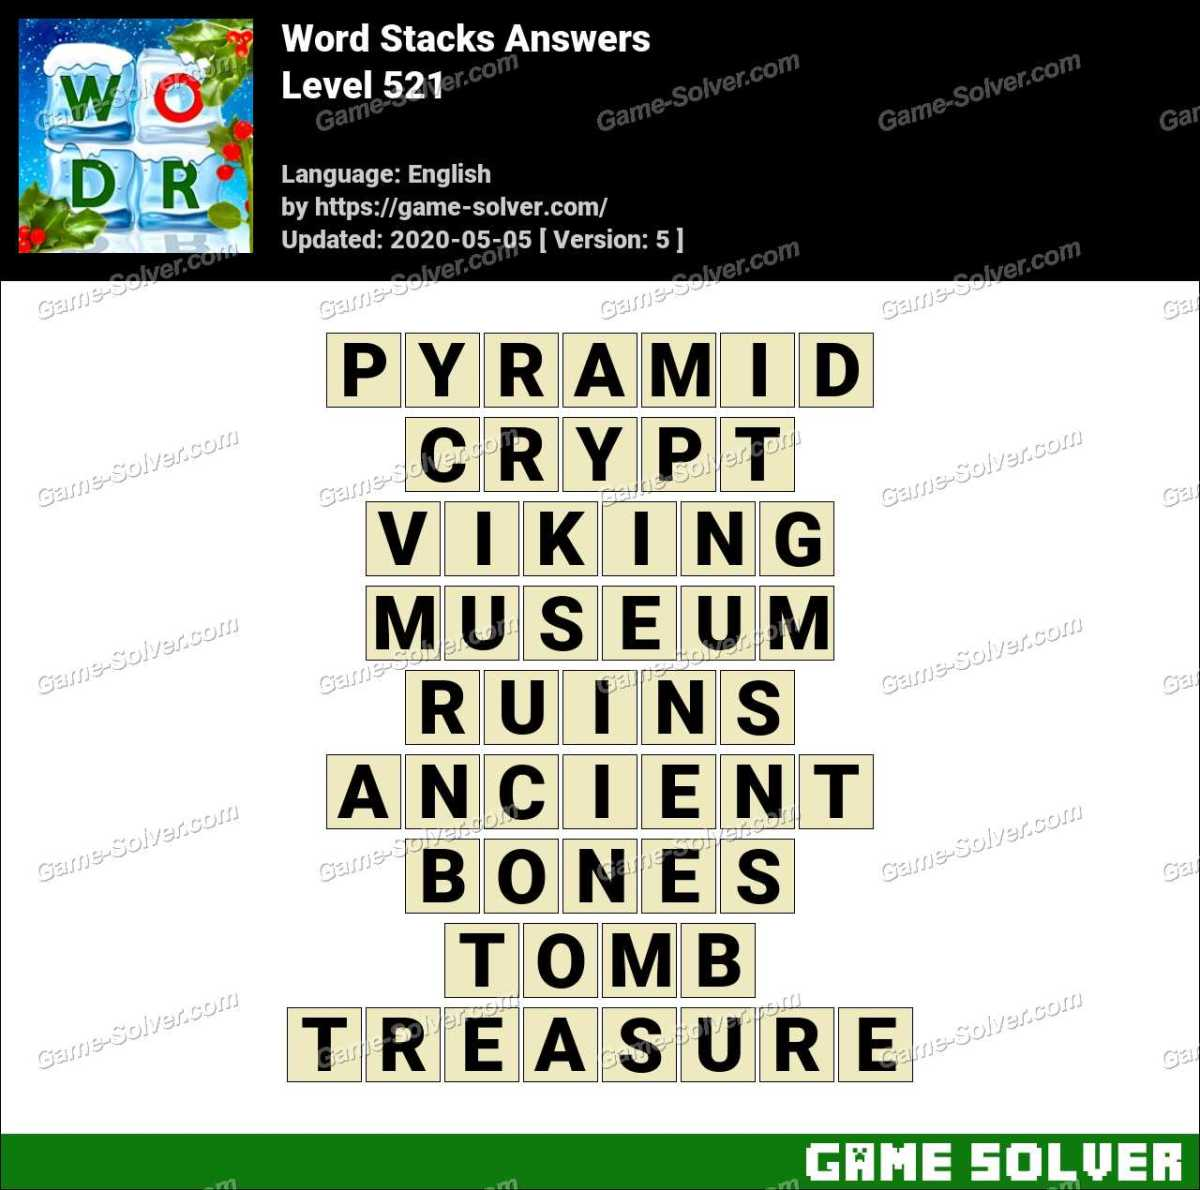 Word Stacks Level 521 Answers